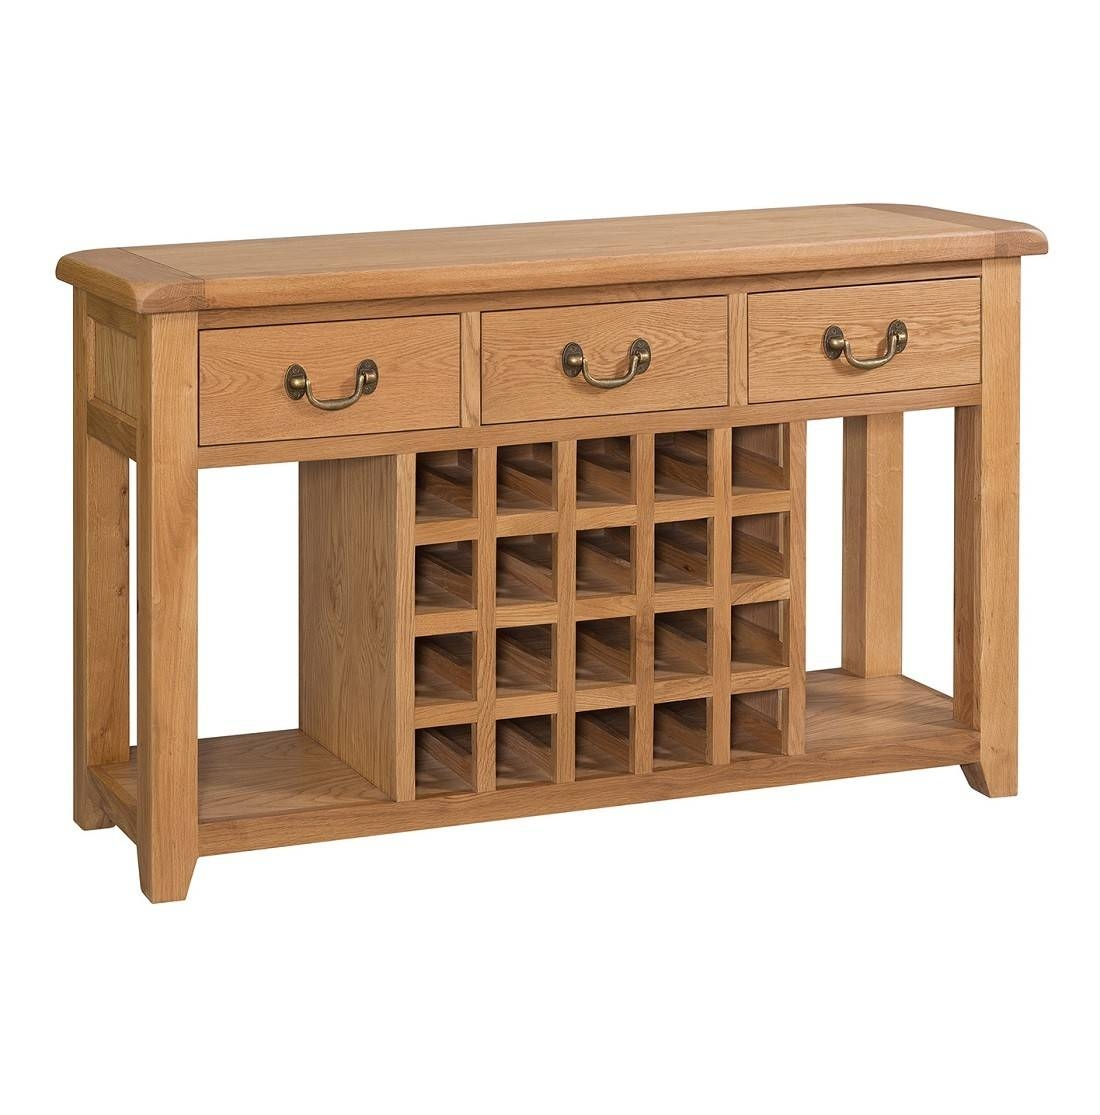 Buttermere Light Oak Open Sideboard With Wine Rack | Oak Furniture Uk inside Oak Sideboards With Wine Rack (Image 3 of 30)